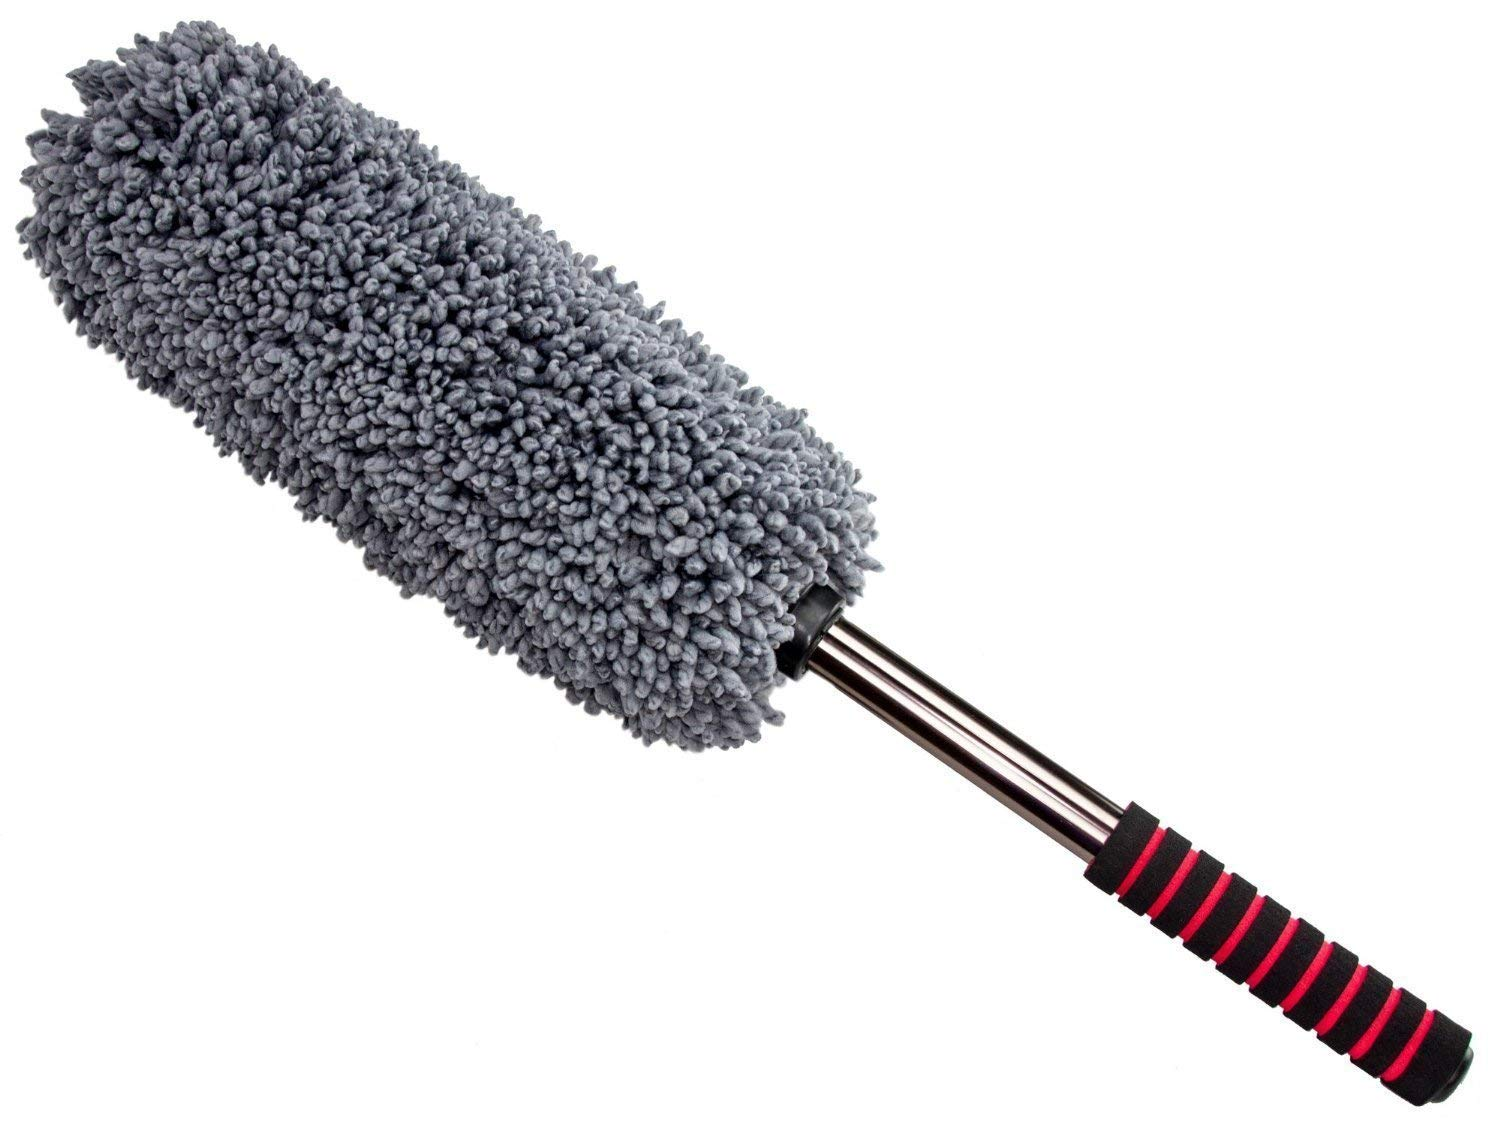 Favson Microfiber Car Duster, Extendable Long Duster for Pollen Removing, Exterior or Interior Use, Lint Free, Unbreakable Handle Design Long Duster